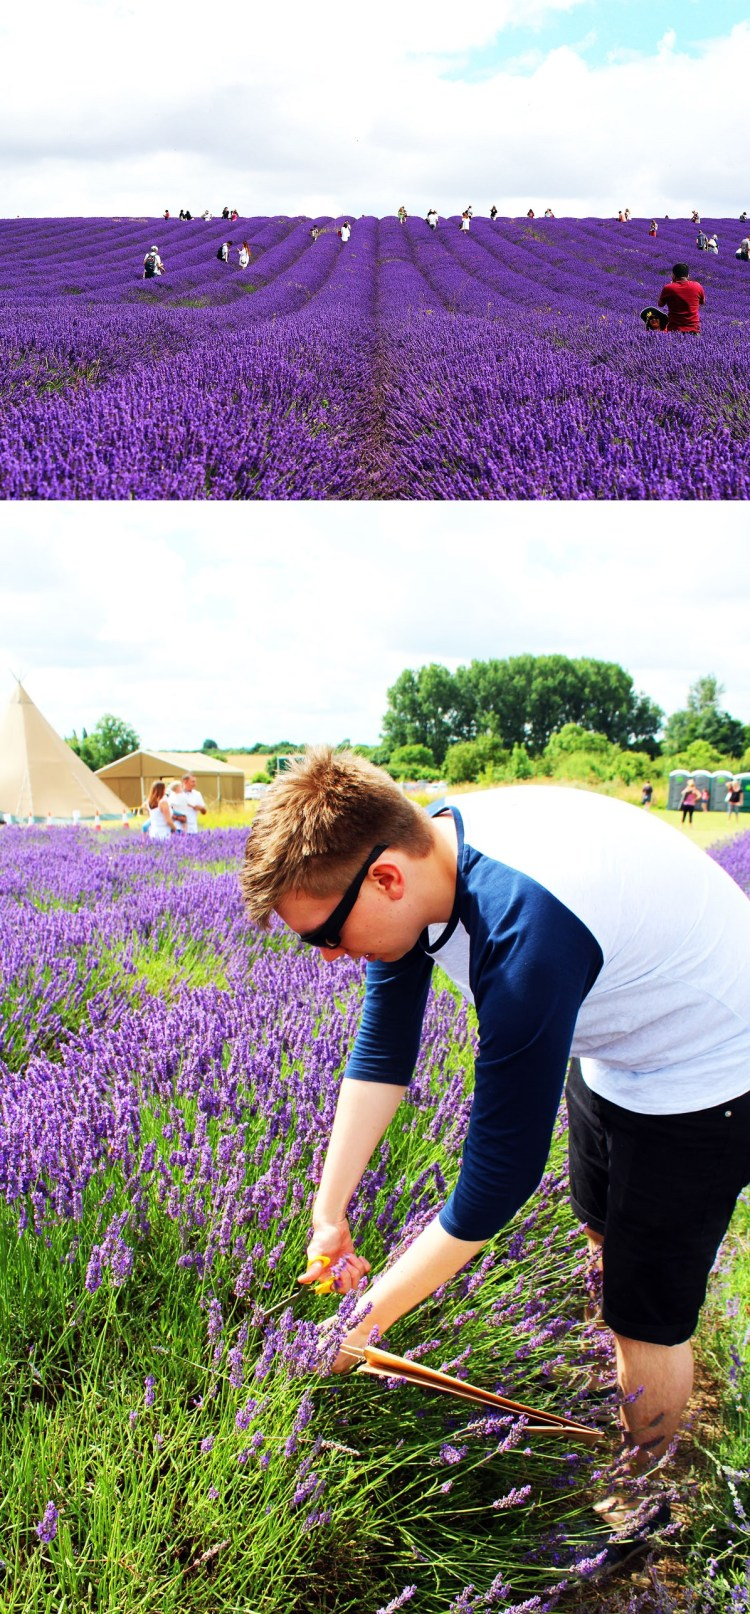 Picking fresh lavender from local lavender fields is a fantastic way to spend the summer holiday for kids and adults! The beautiful fresh cut flowers can be used in a whole host of crafts and recipes including Lavender and Honey Layer Cake!